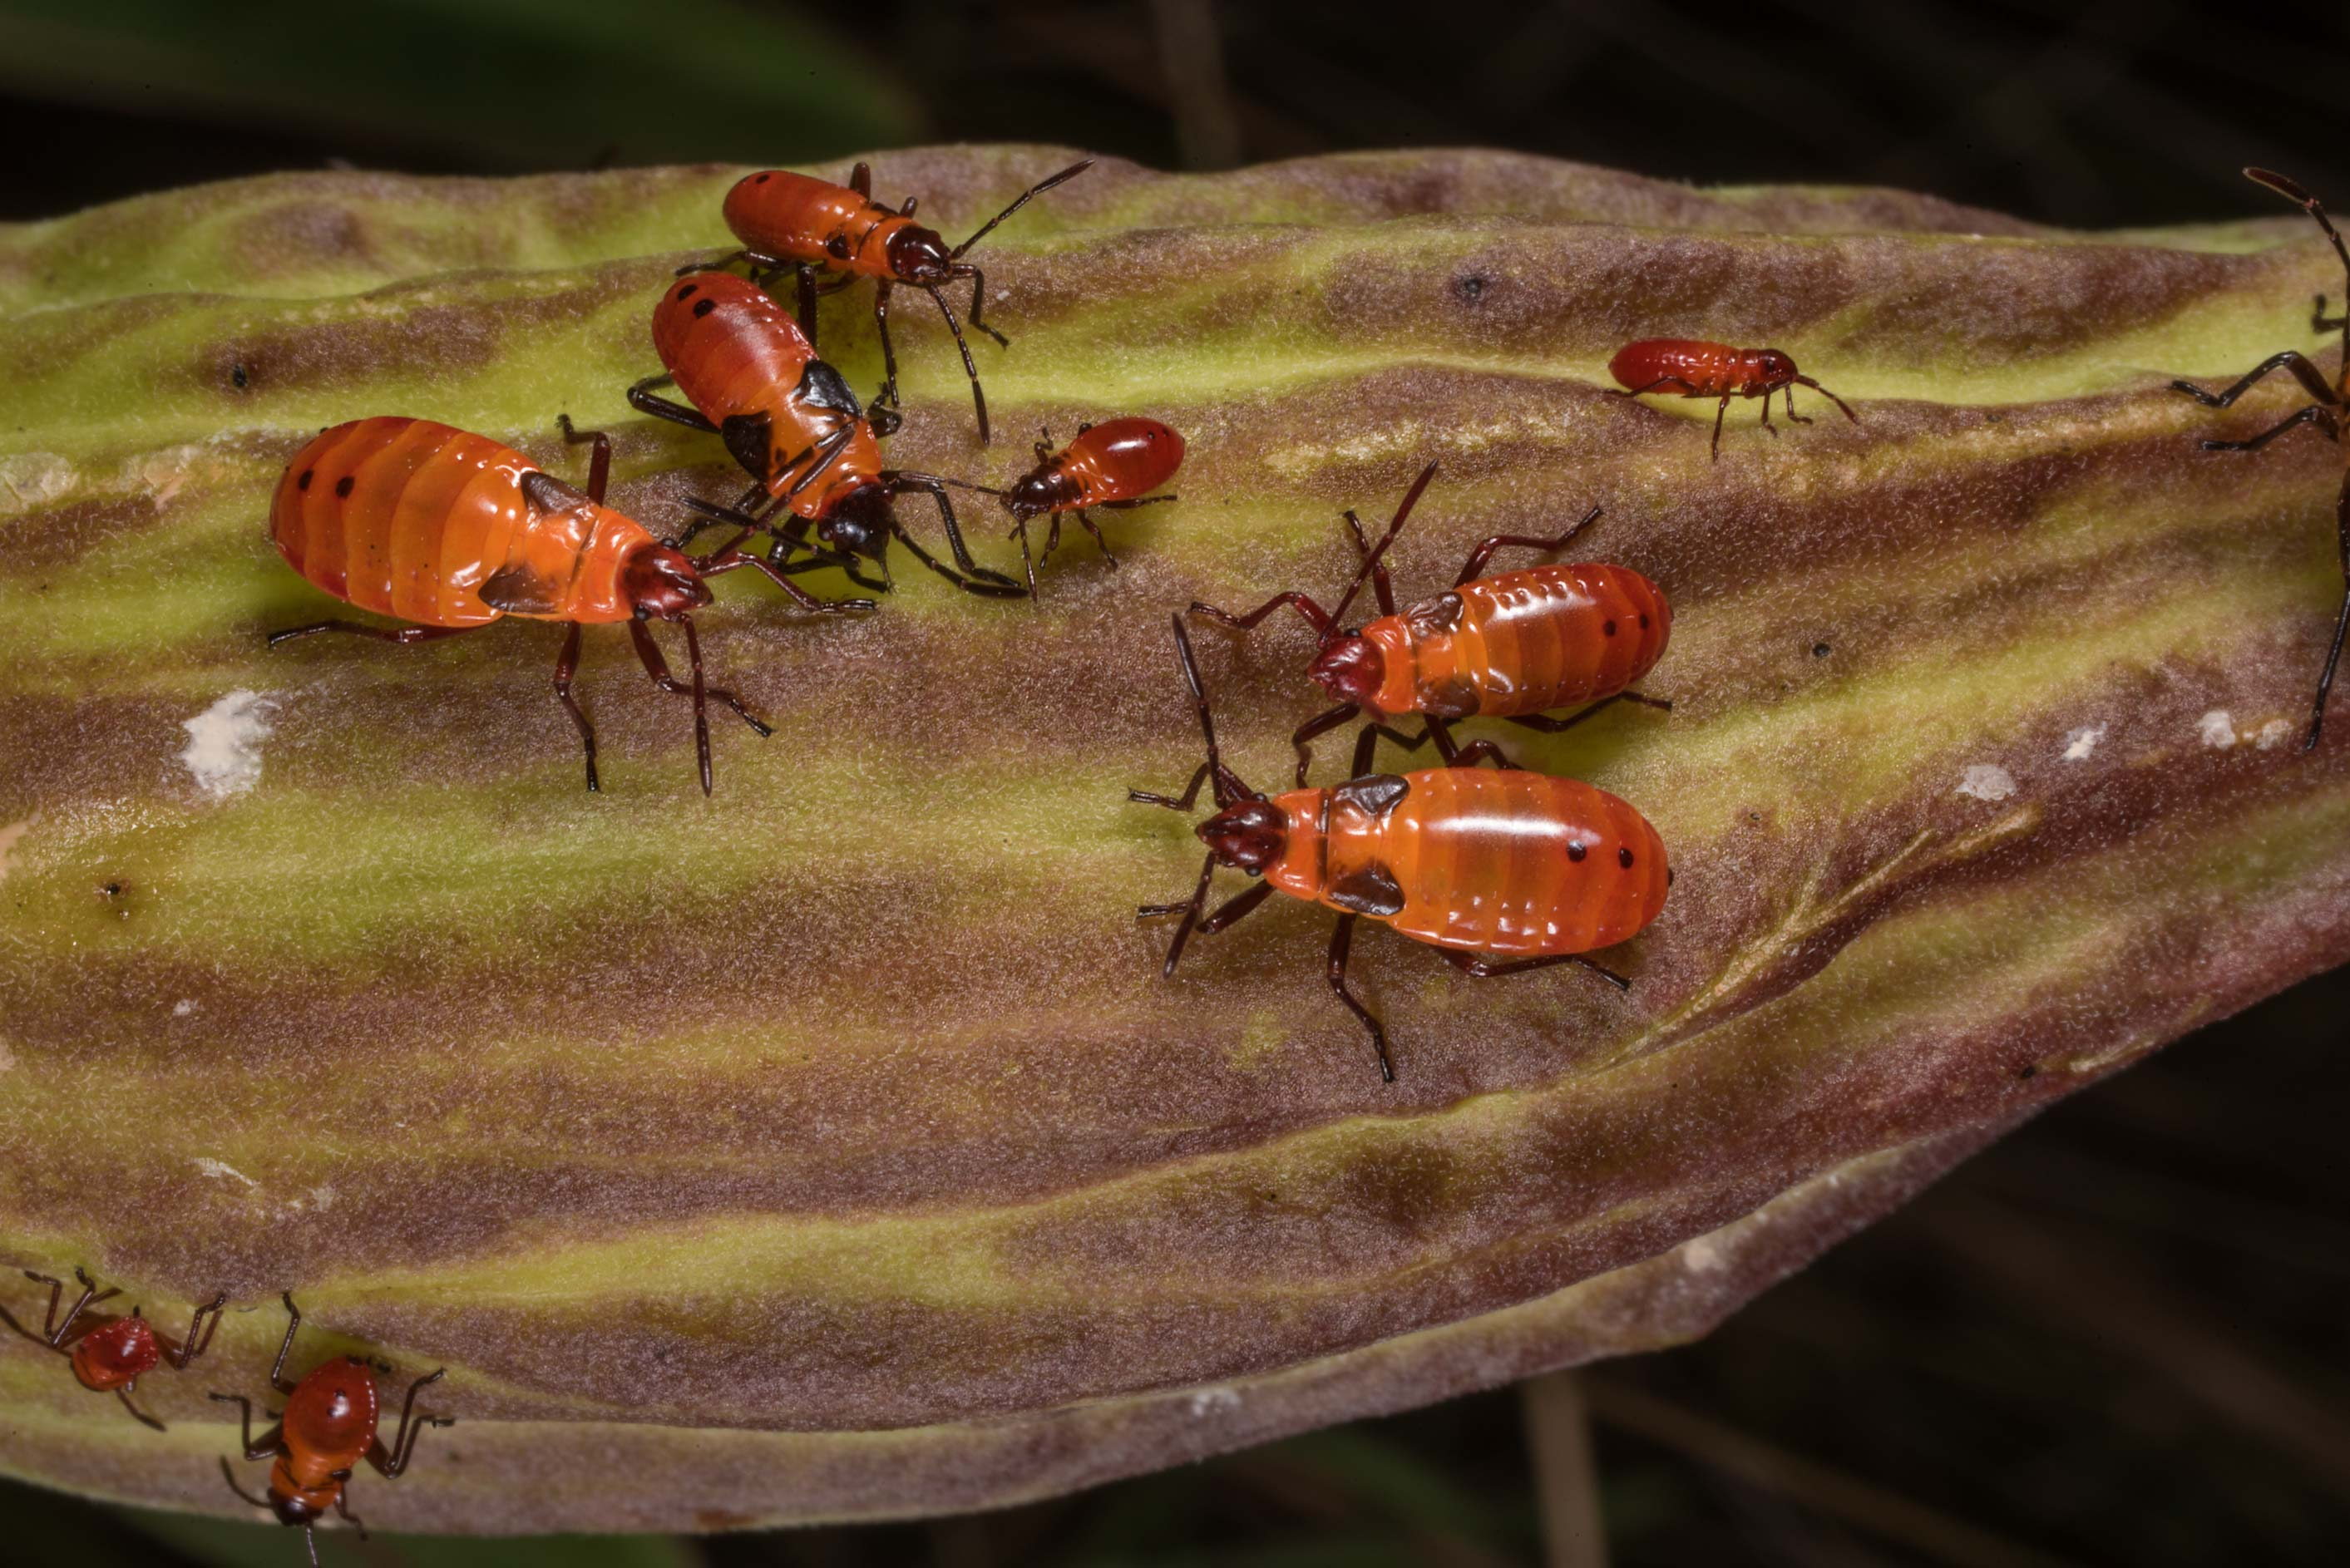 Nymphs of red milkweed bugs on green milkweed...State Historic Site. Washington, Texas